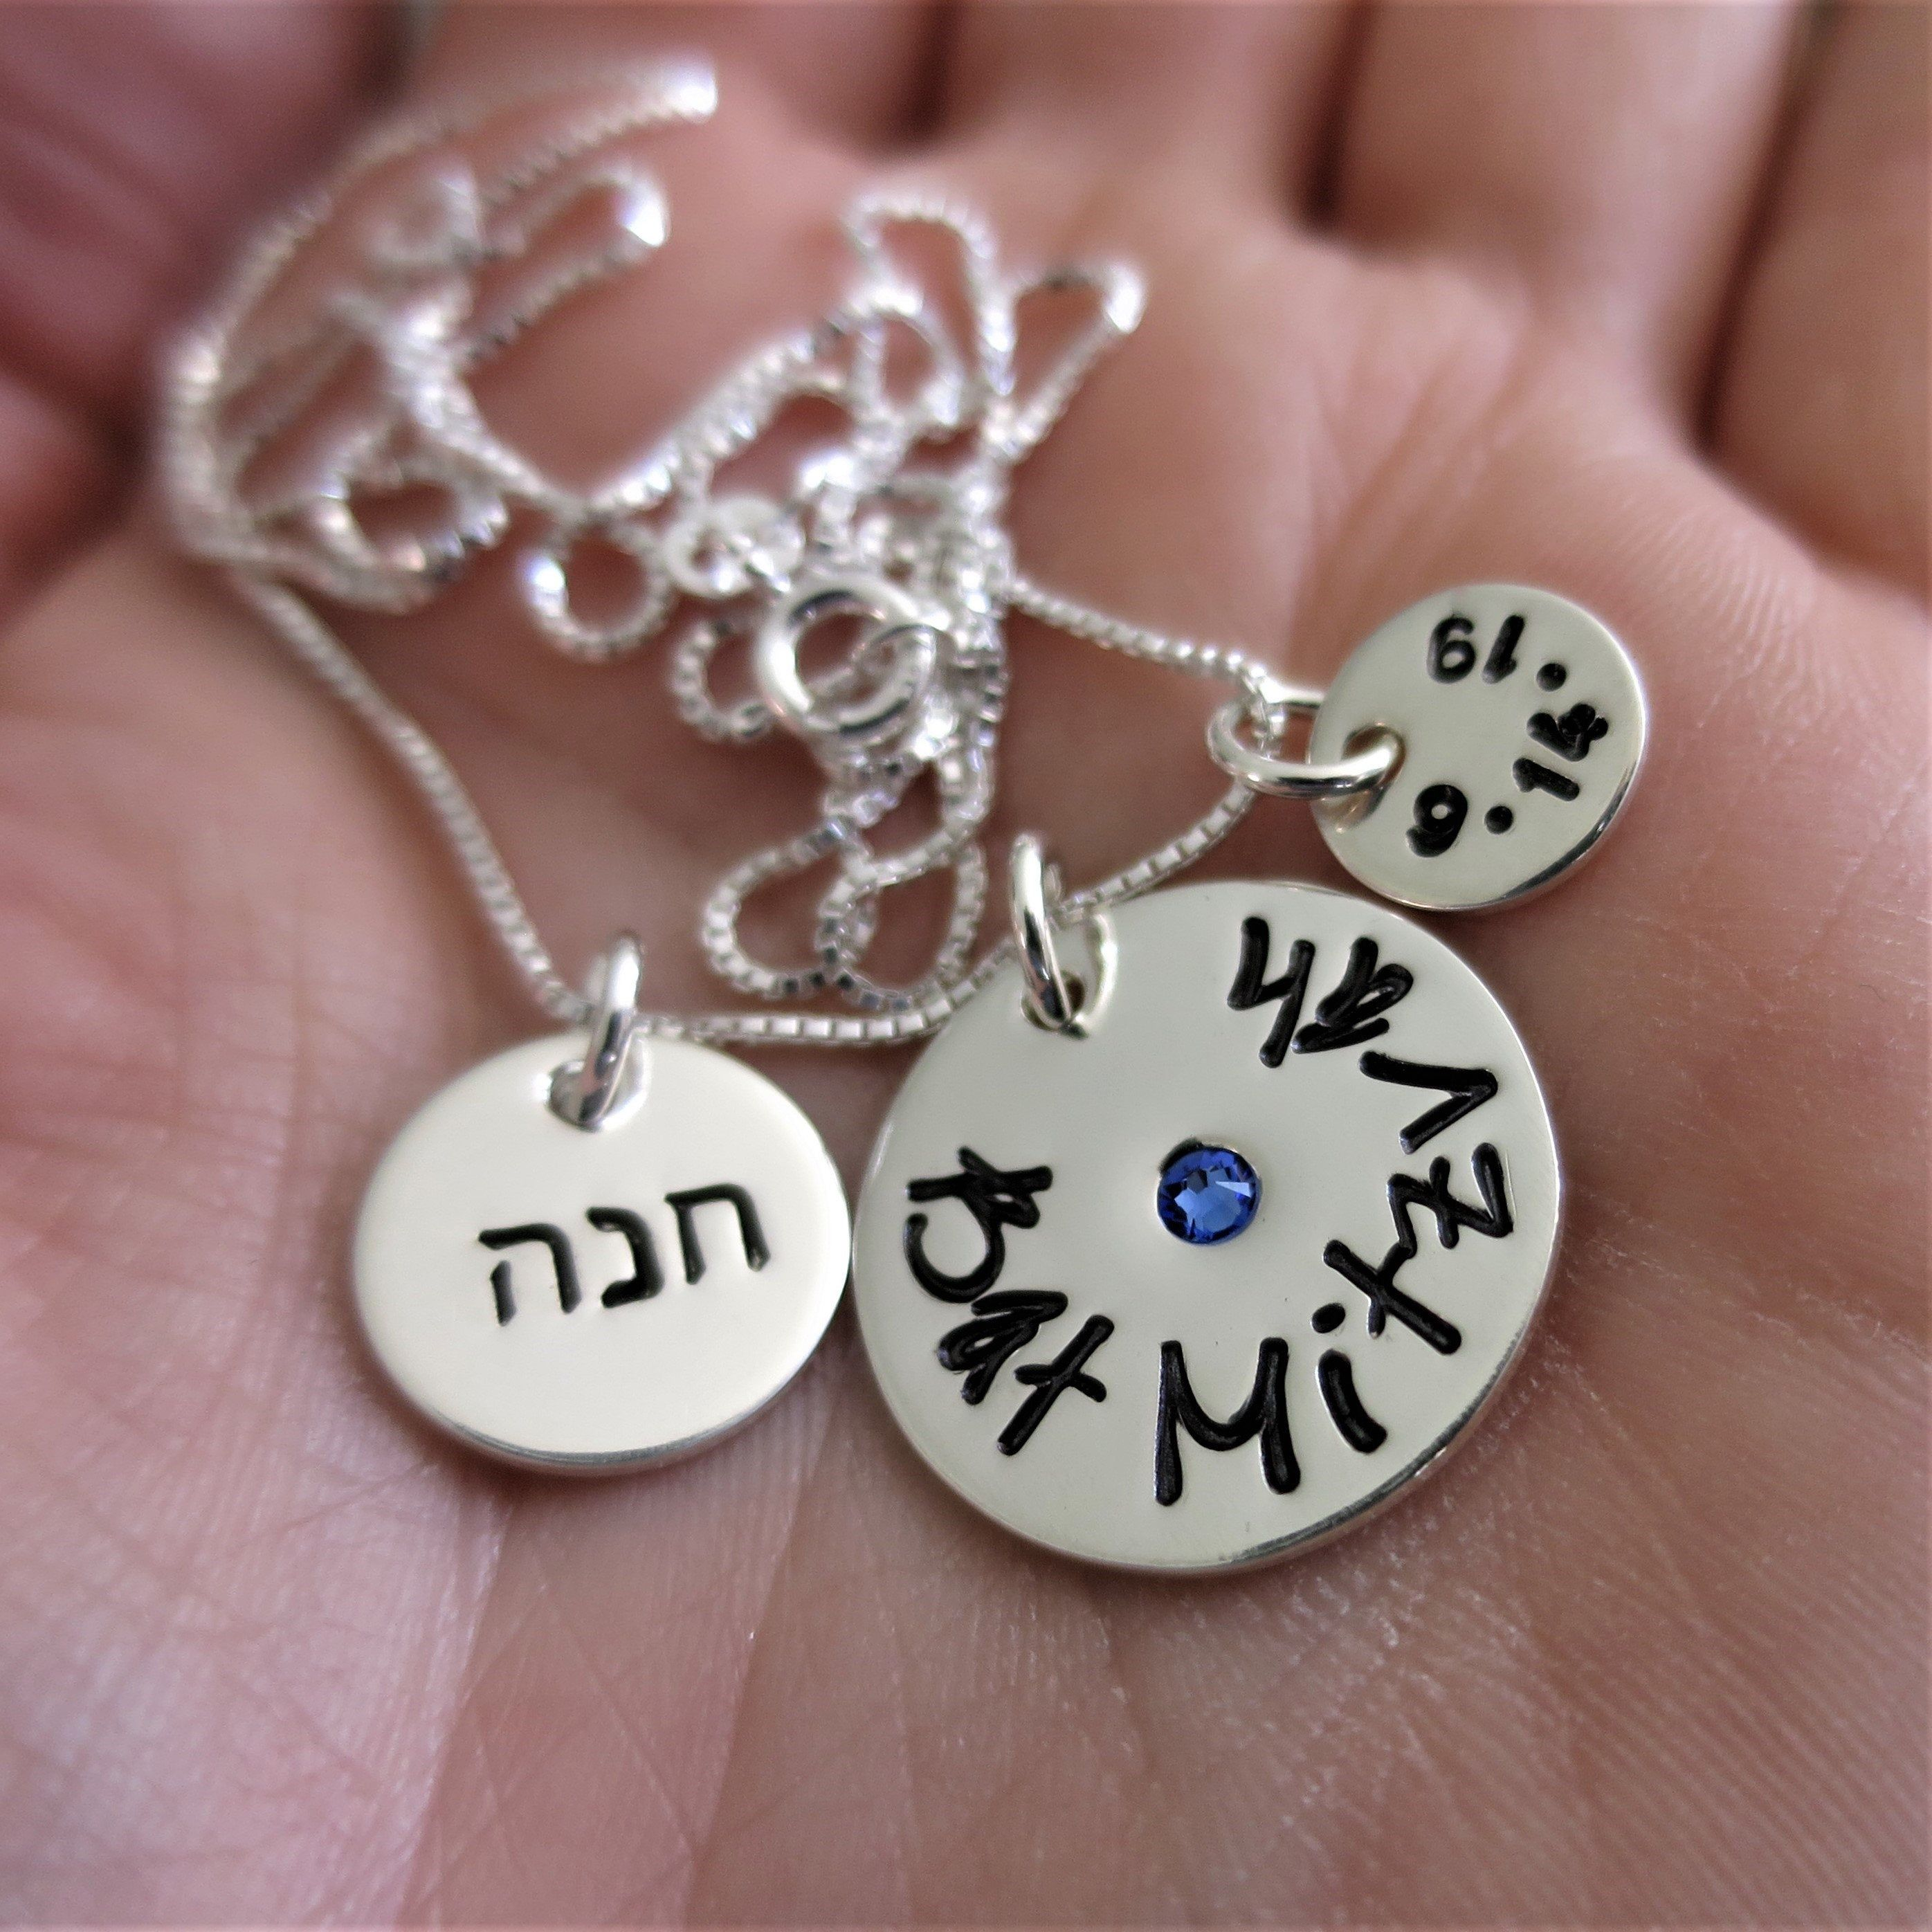 Custom bat mitzvah charm necklace sterling silver 925